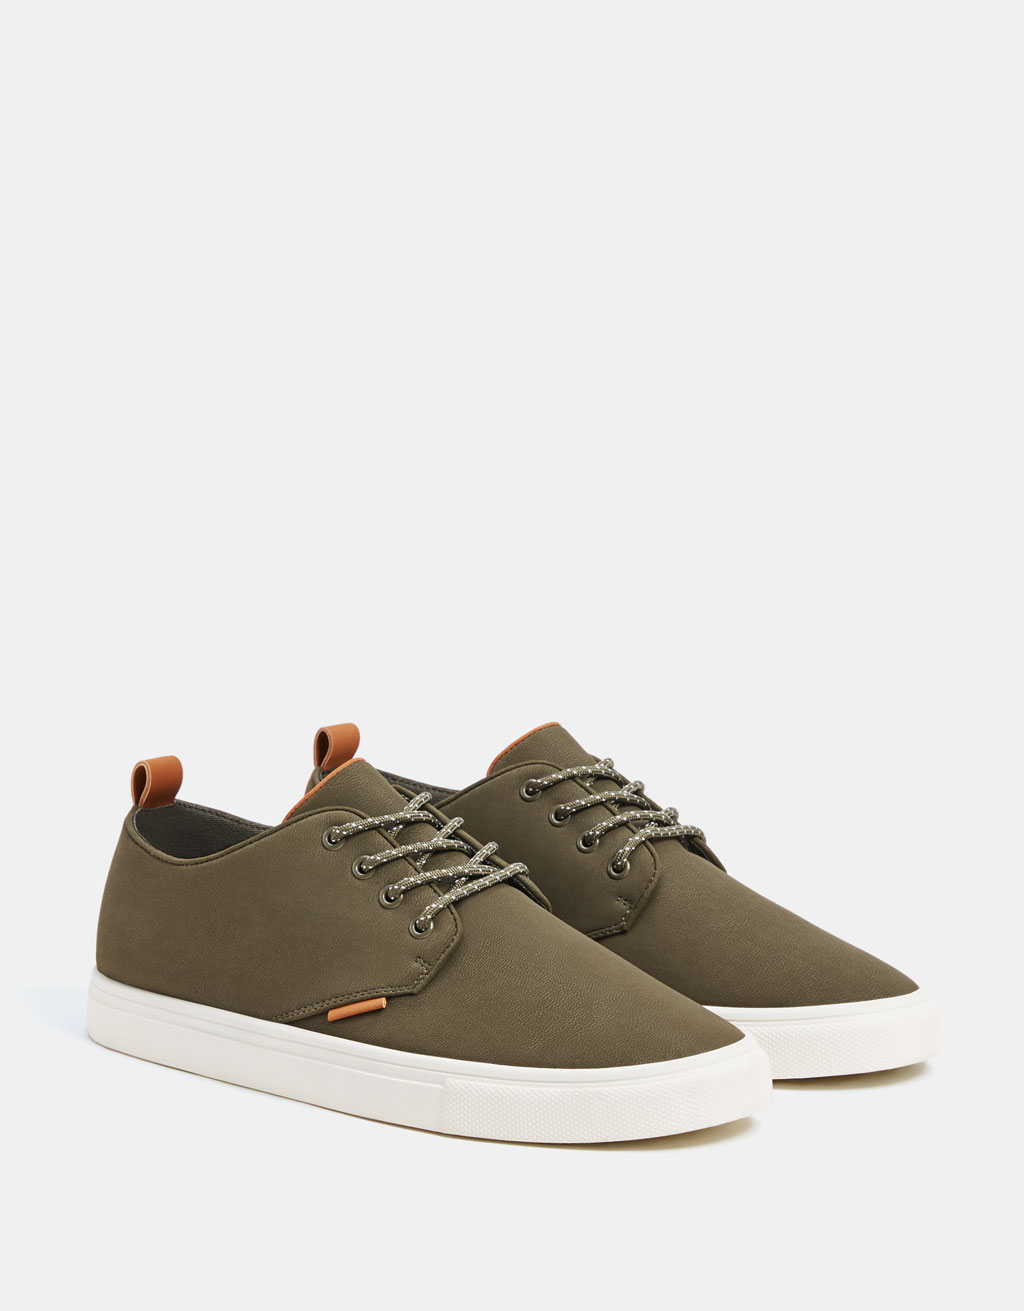 Men's khaki dress sneakers